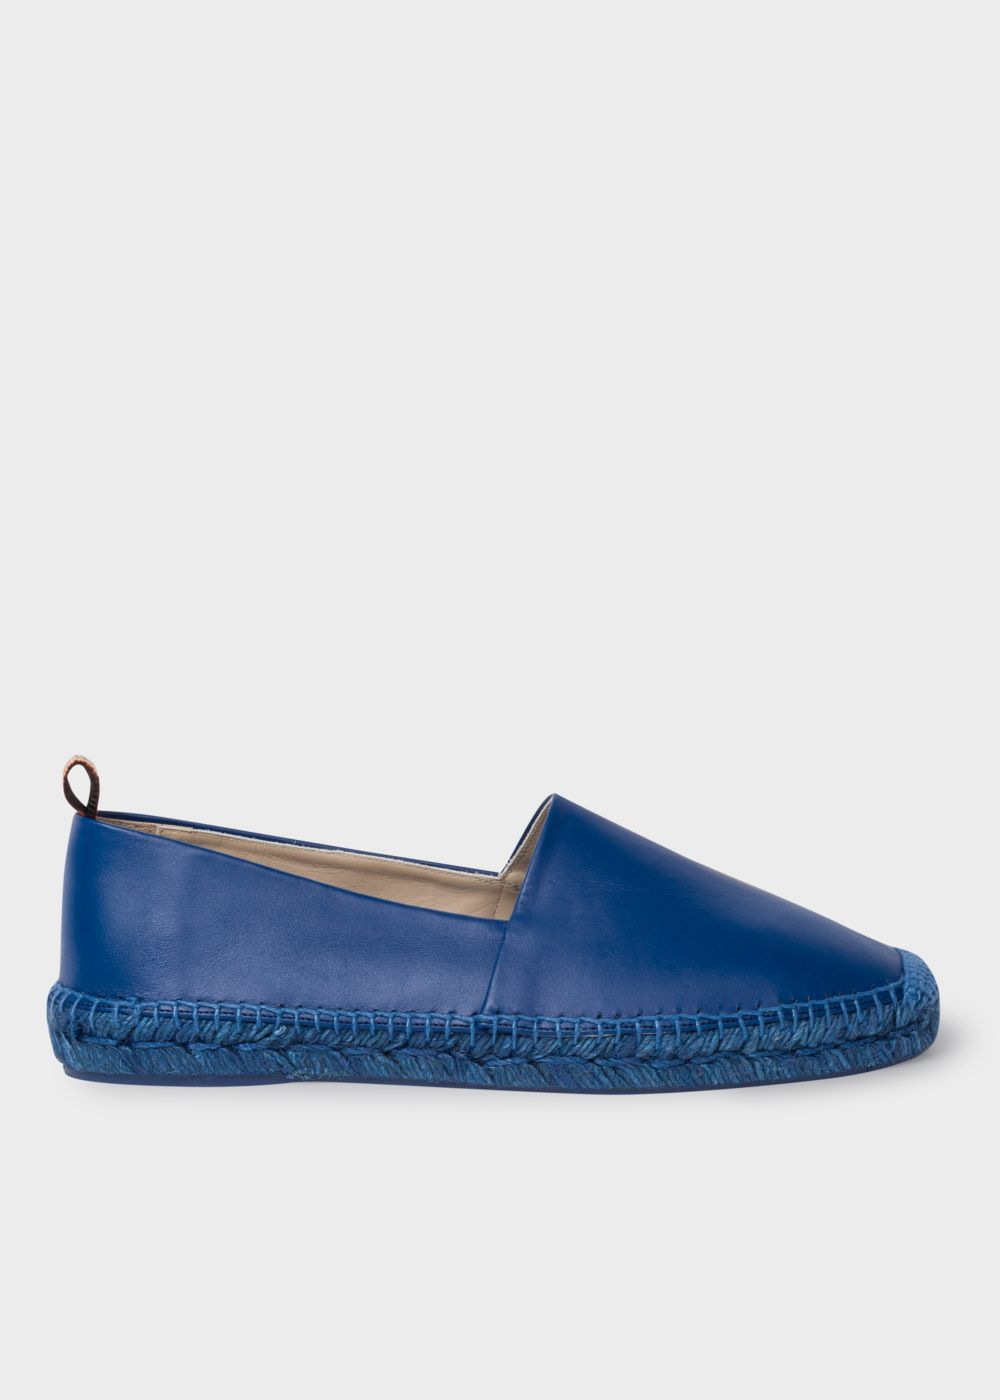 Paul Smith Men's Blue Leather 'Sunny' Espadrilles